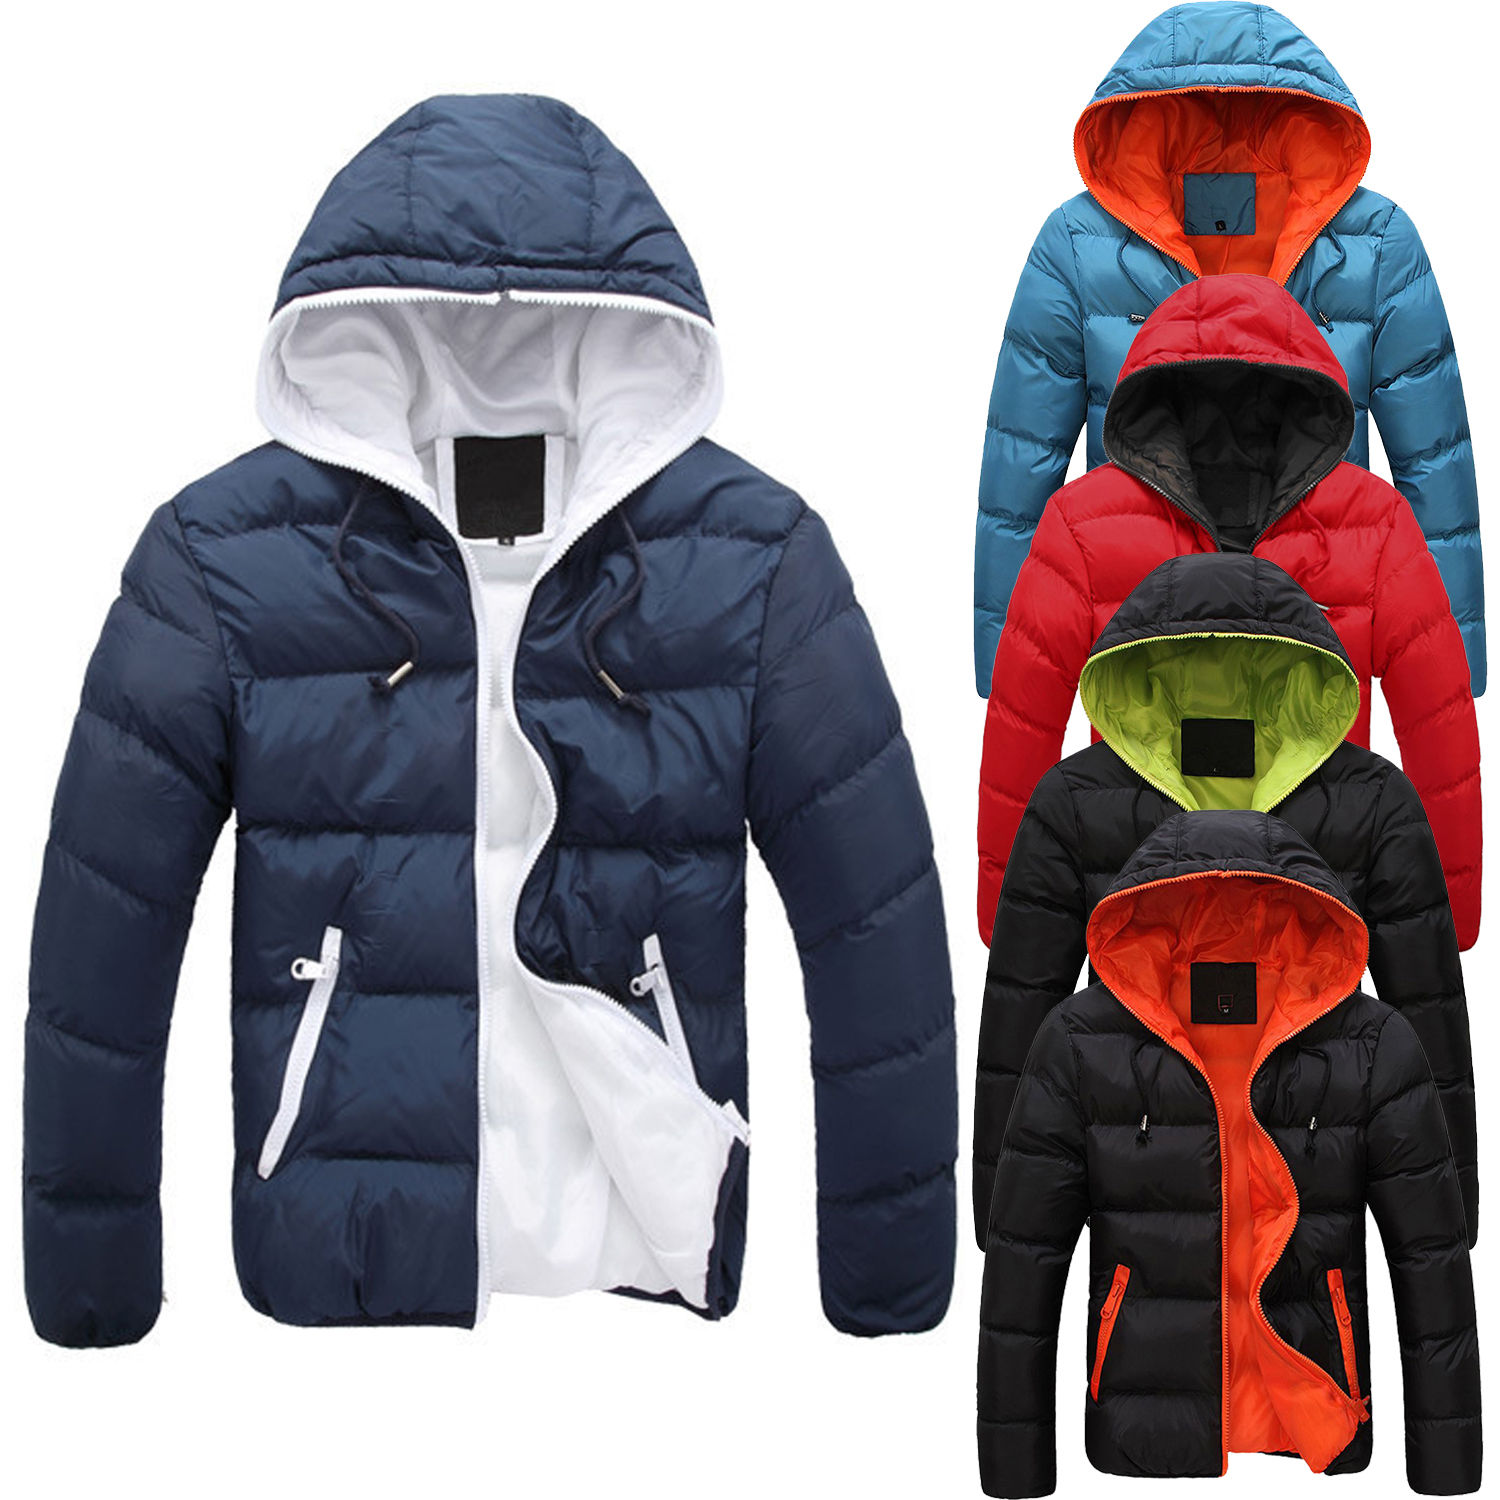 Men's Slim Casual Warm Jacket Hooded Winter Thick